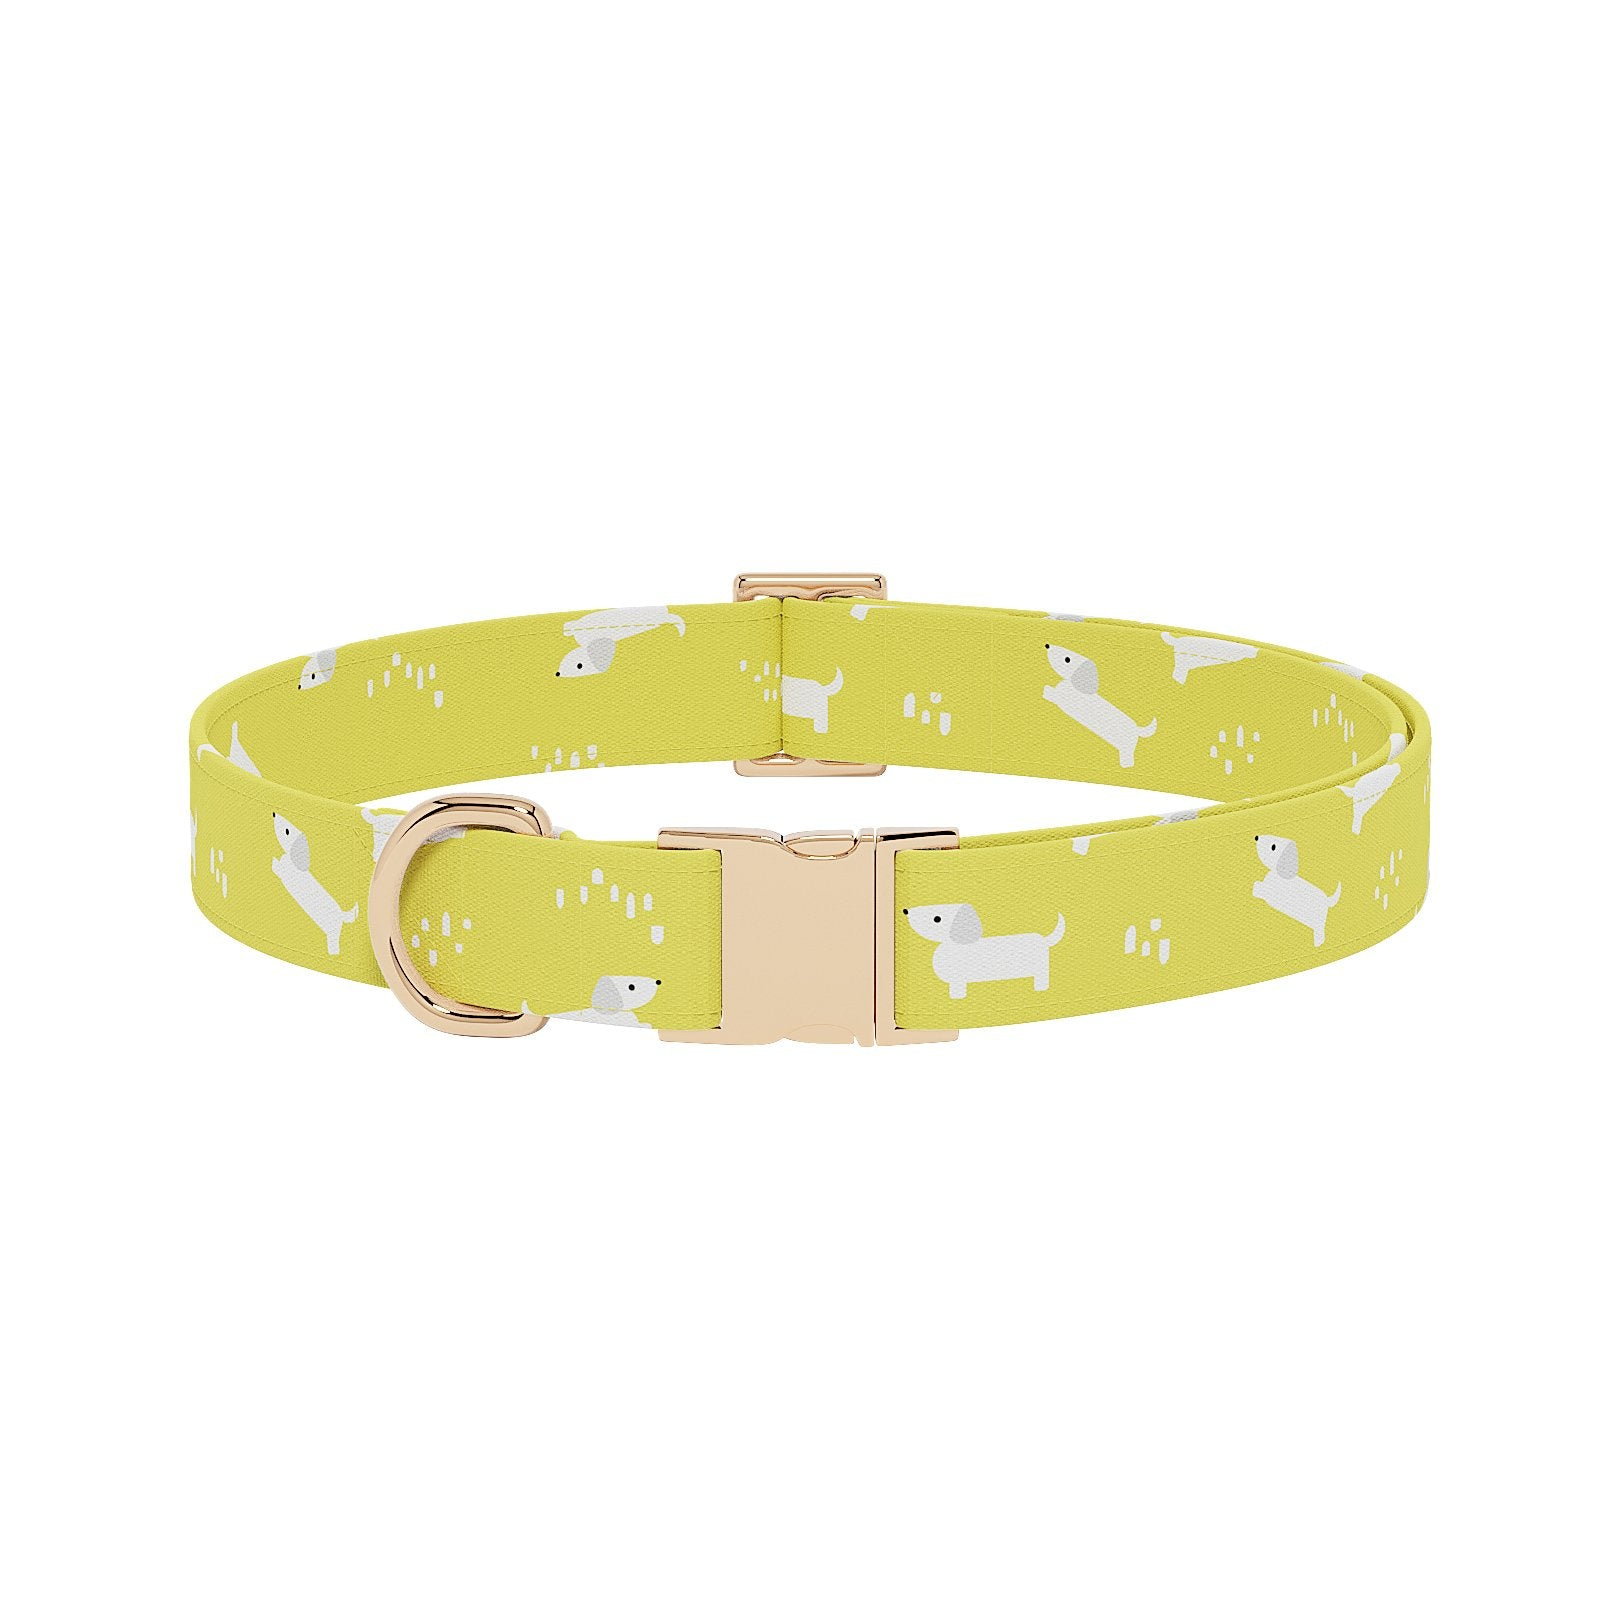 Dachsie Buttercup Dog Collar